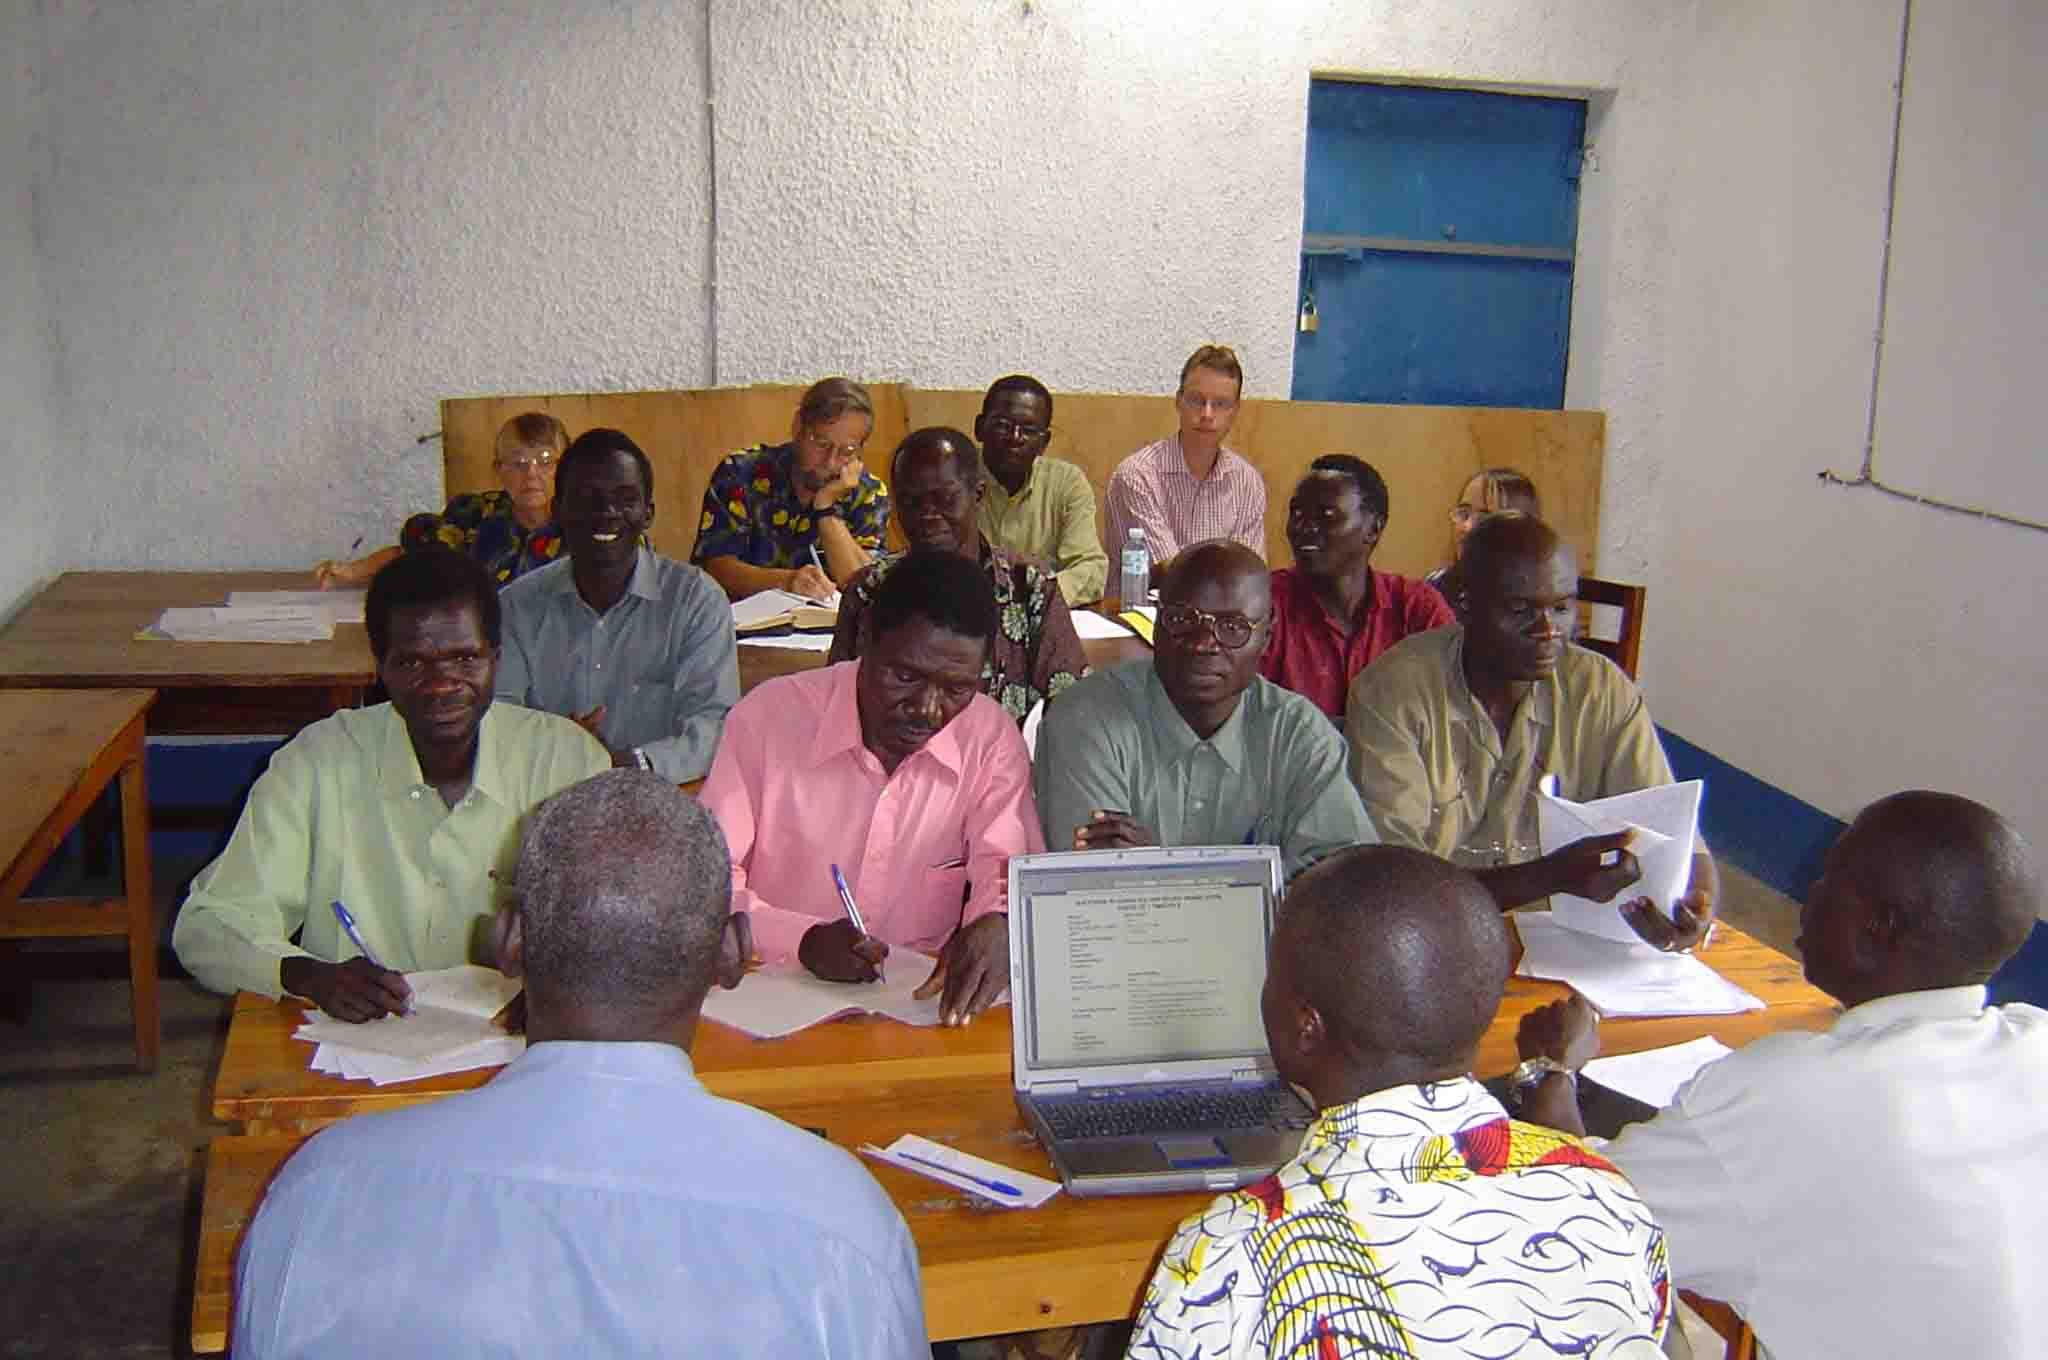 May, 2006: Consultants Joy and John Anderson (back row, left) work with the team to check 1-2 Timothy.